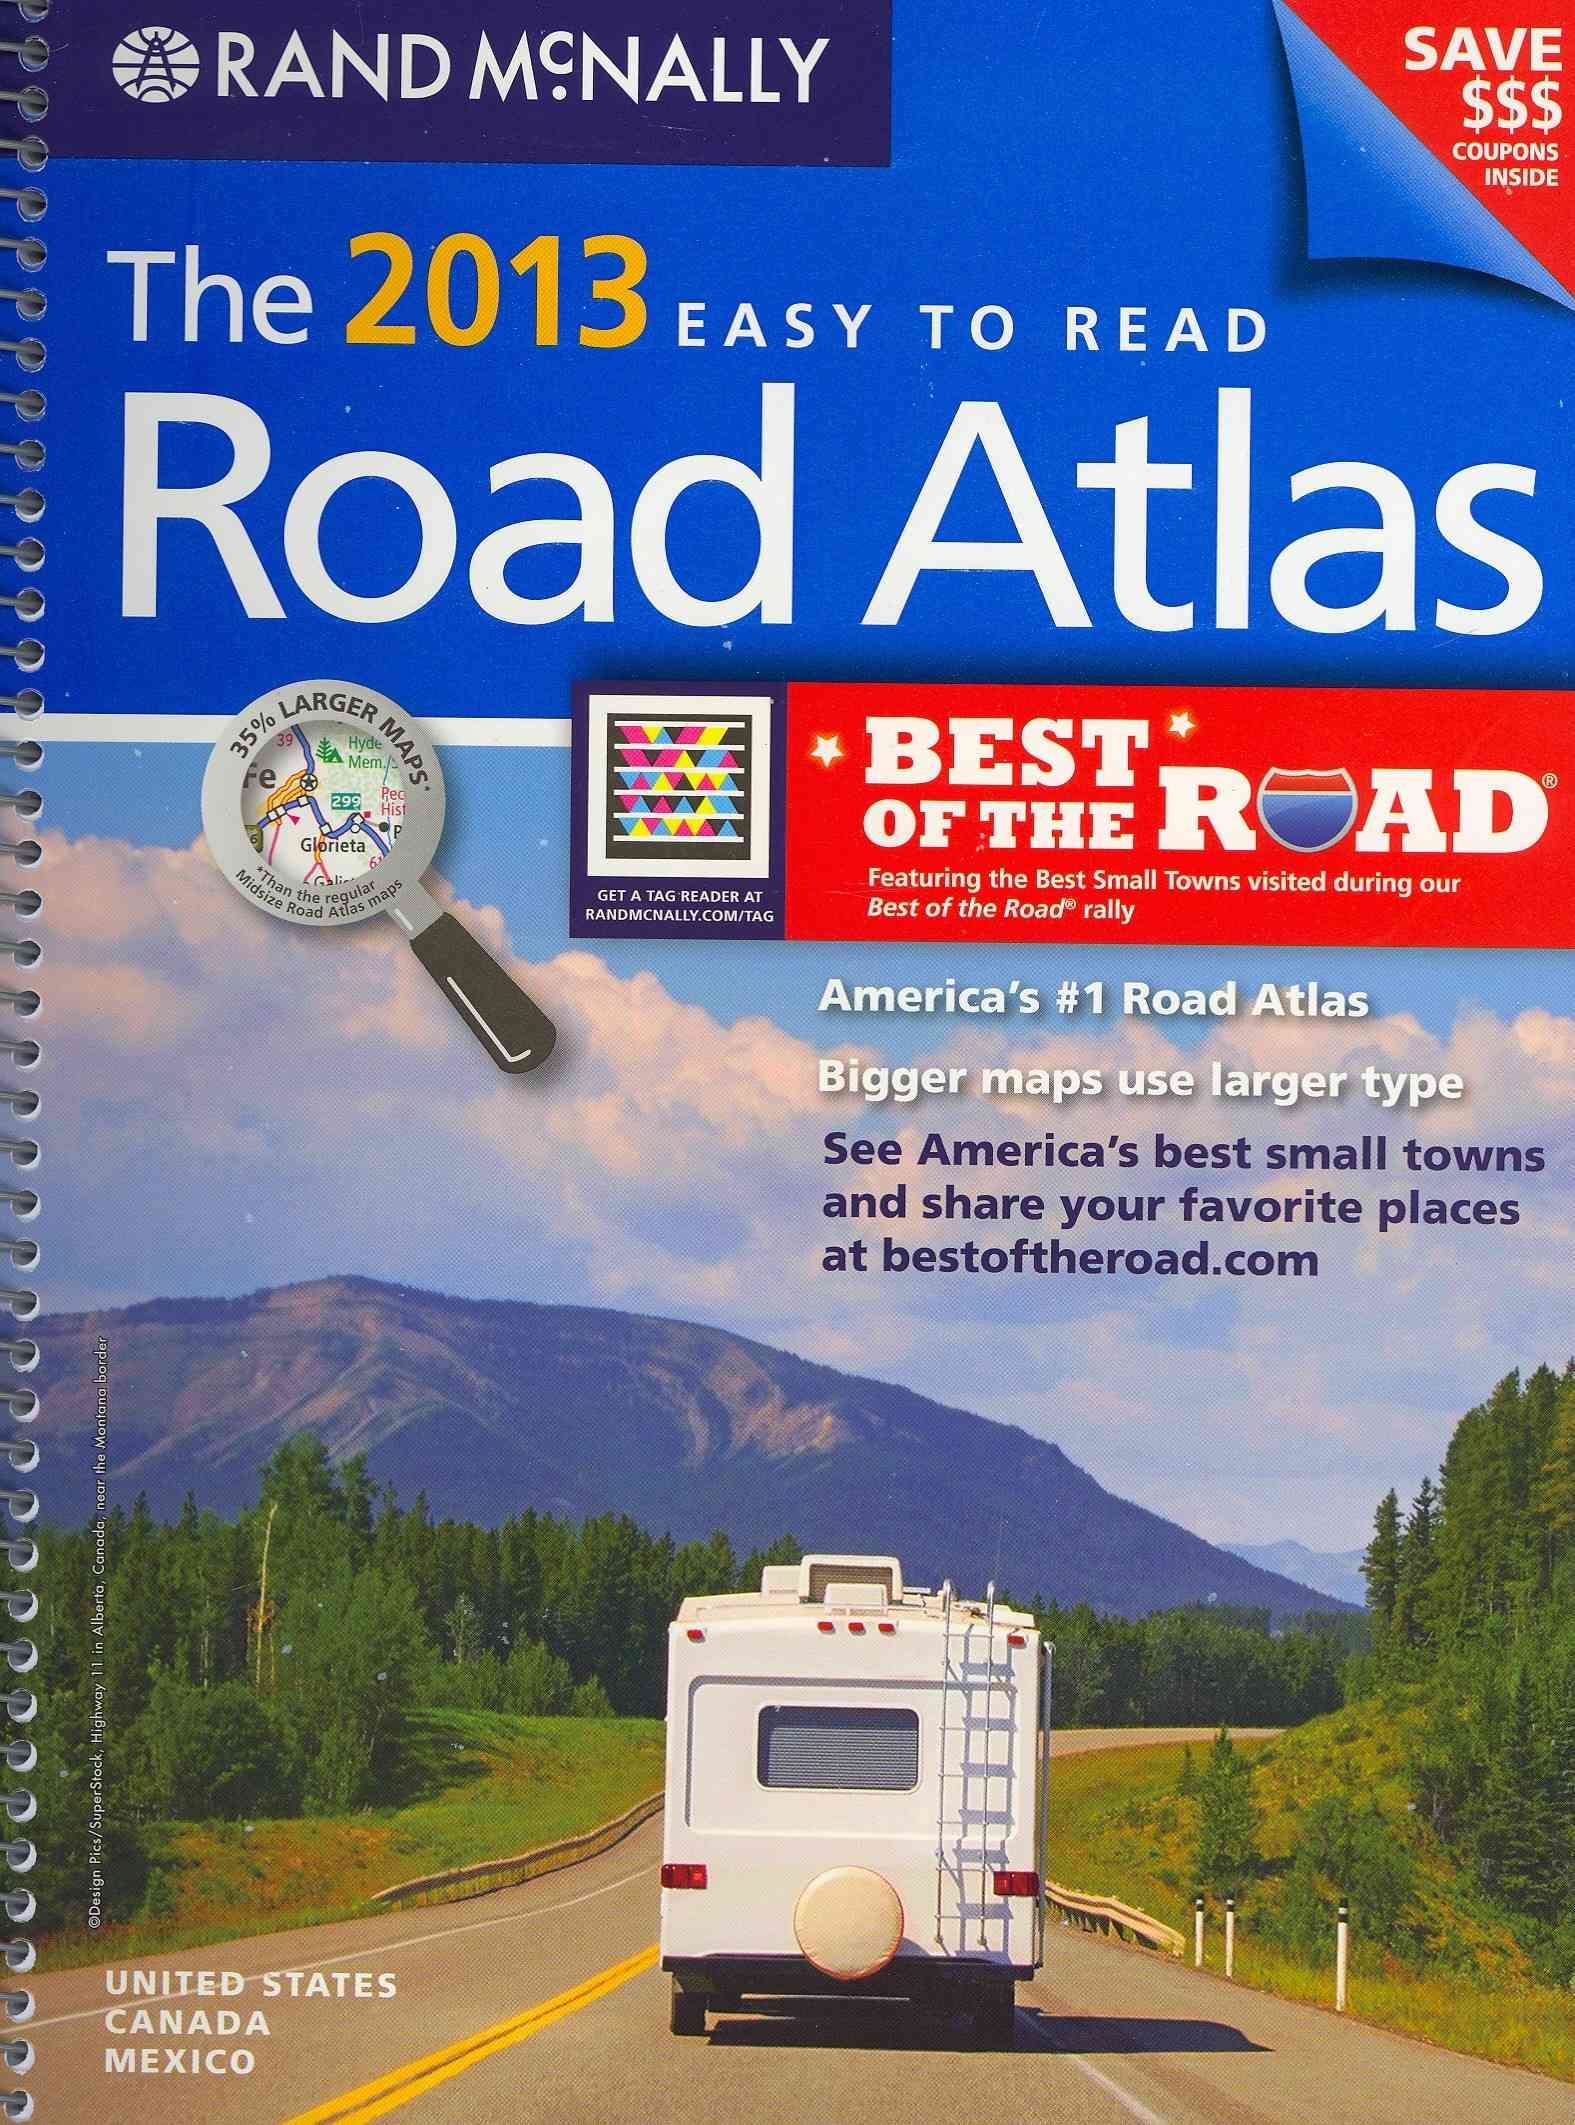 Rand McNally 2013 Easy To Read Road Atlas: United States, Canada, Mexico (Spiral bound)